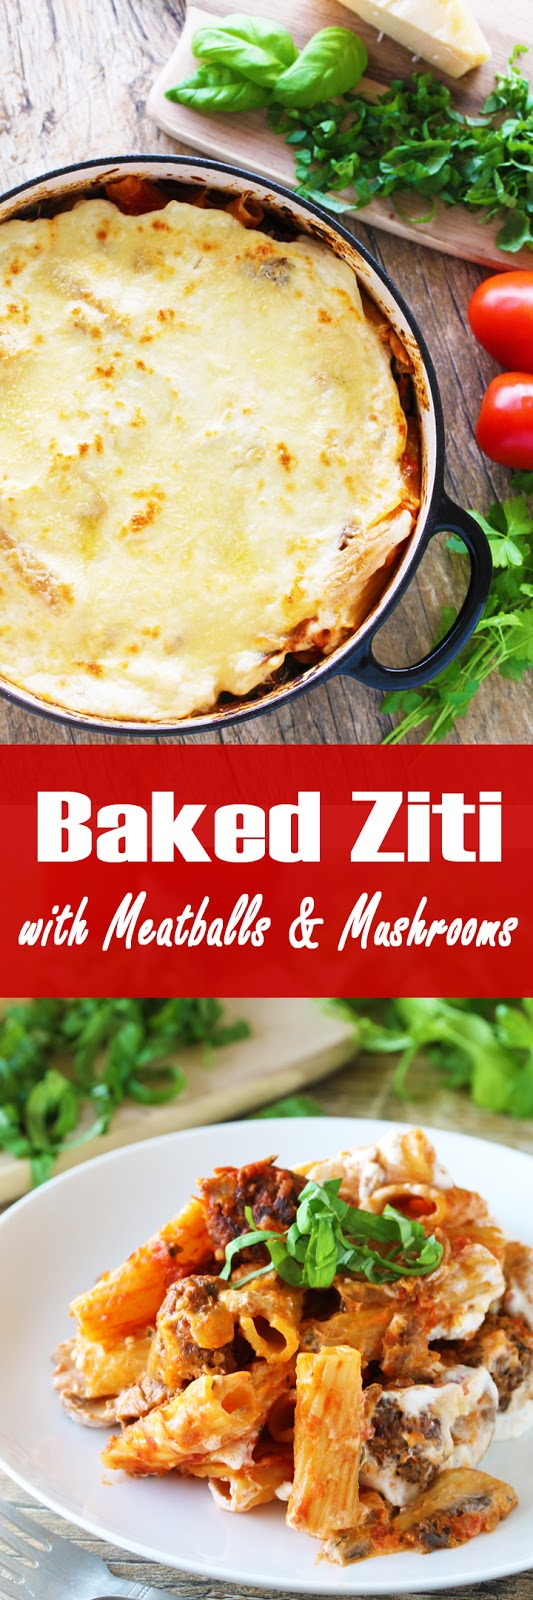 Baked Ziti with Meatballs and Mushrooms